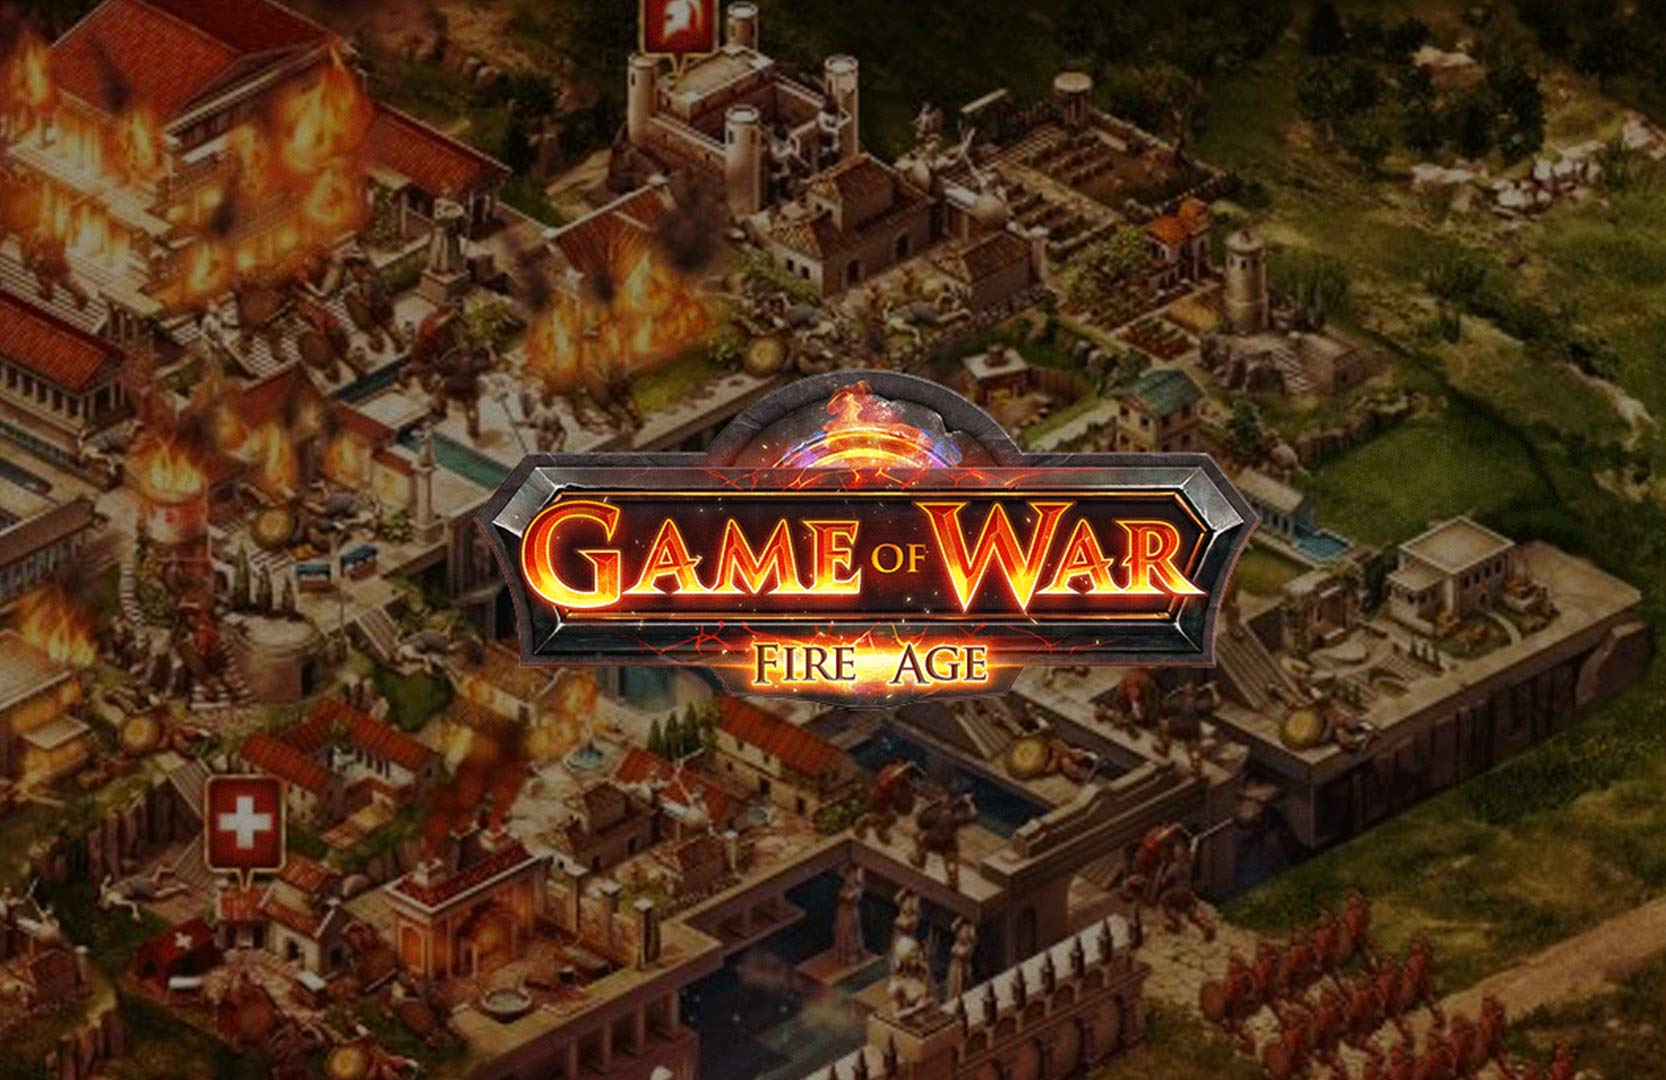 game-of-war-fire-age-eniyico-1590425856.jpg